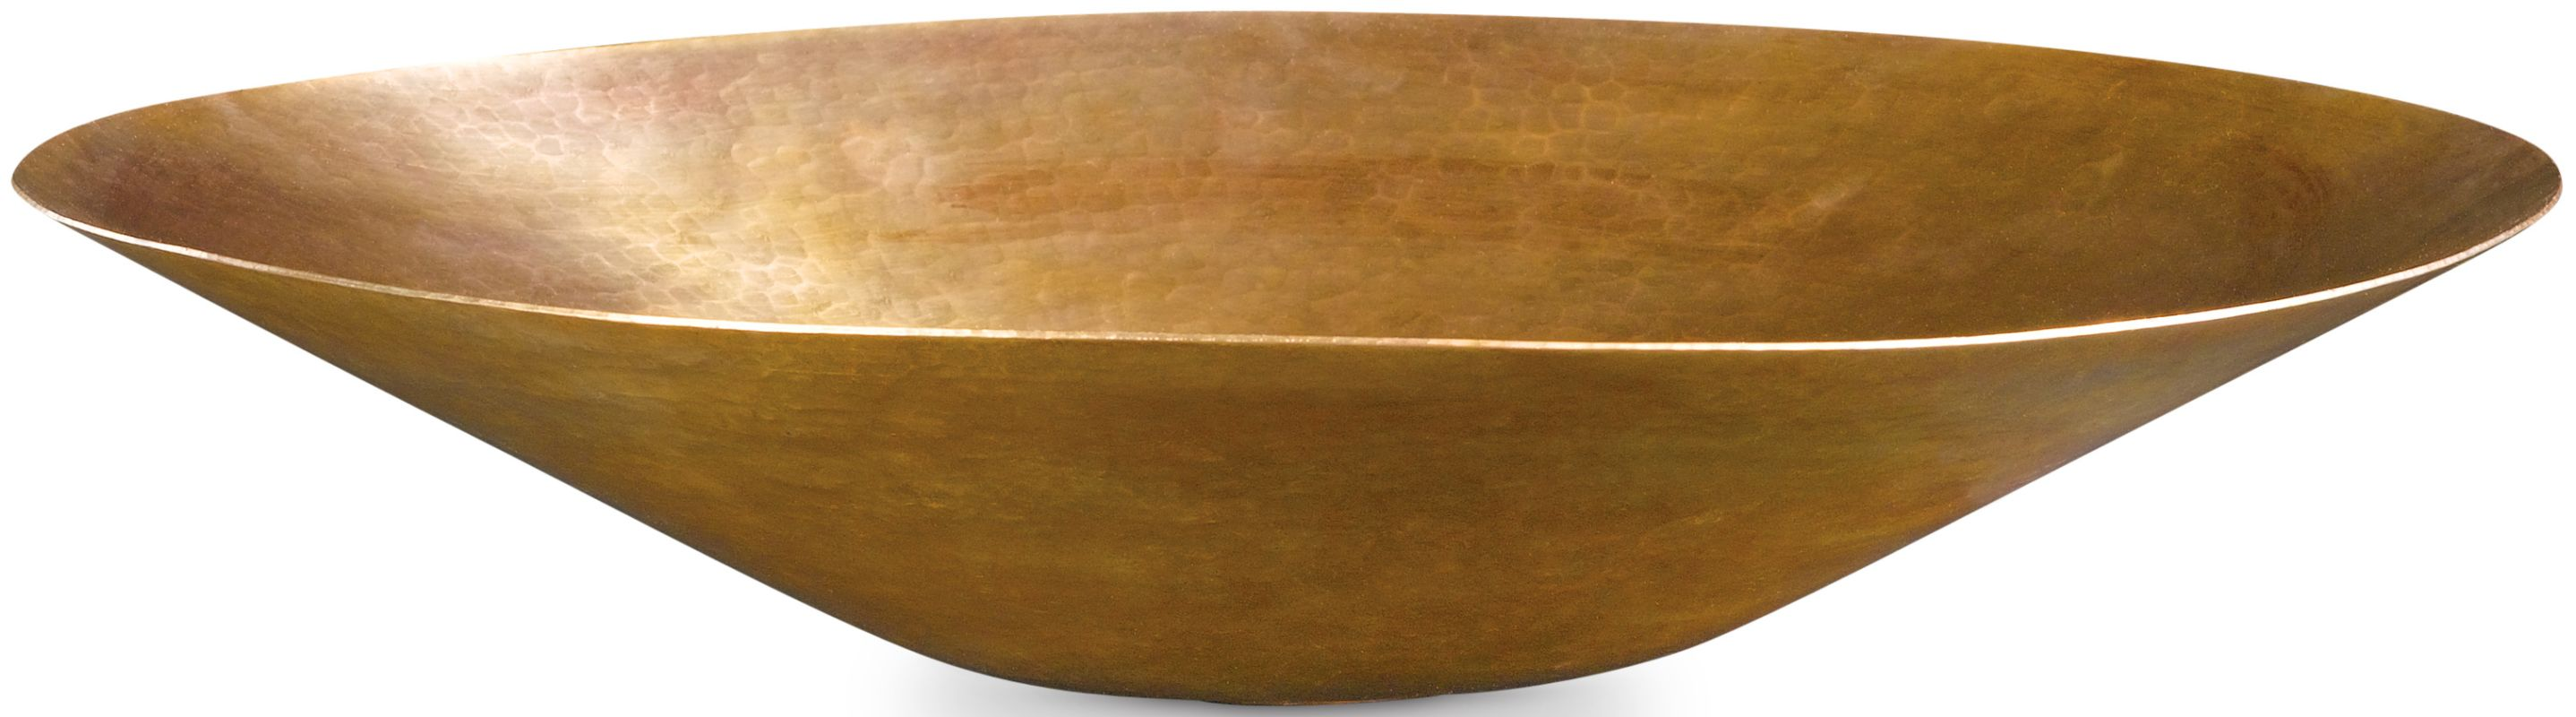 Thompson Traders Casg Antique Satin Gold 16 3 4 Quot Drop In